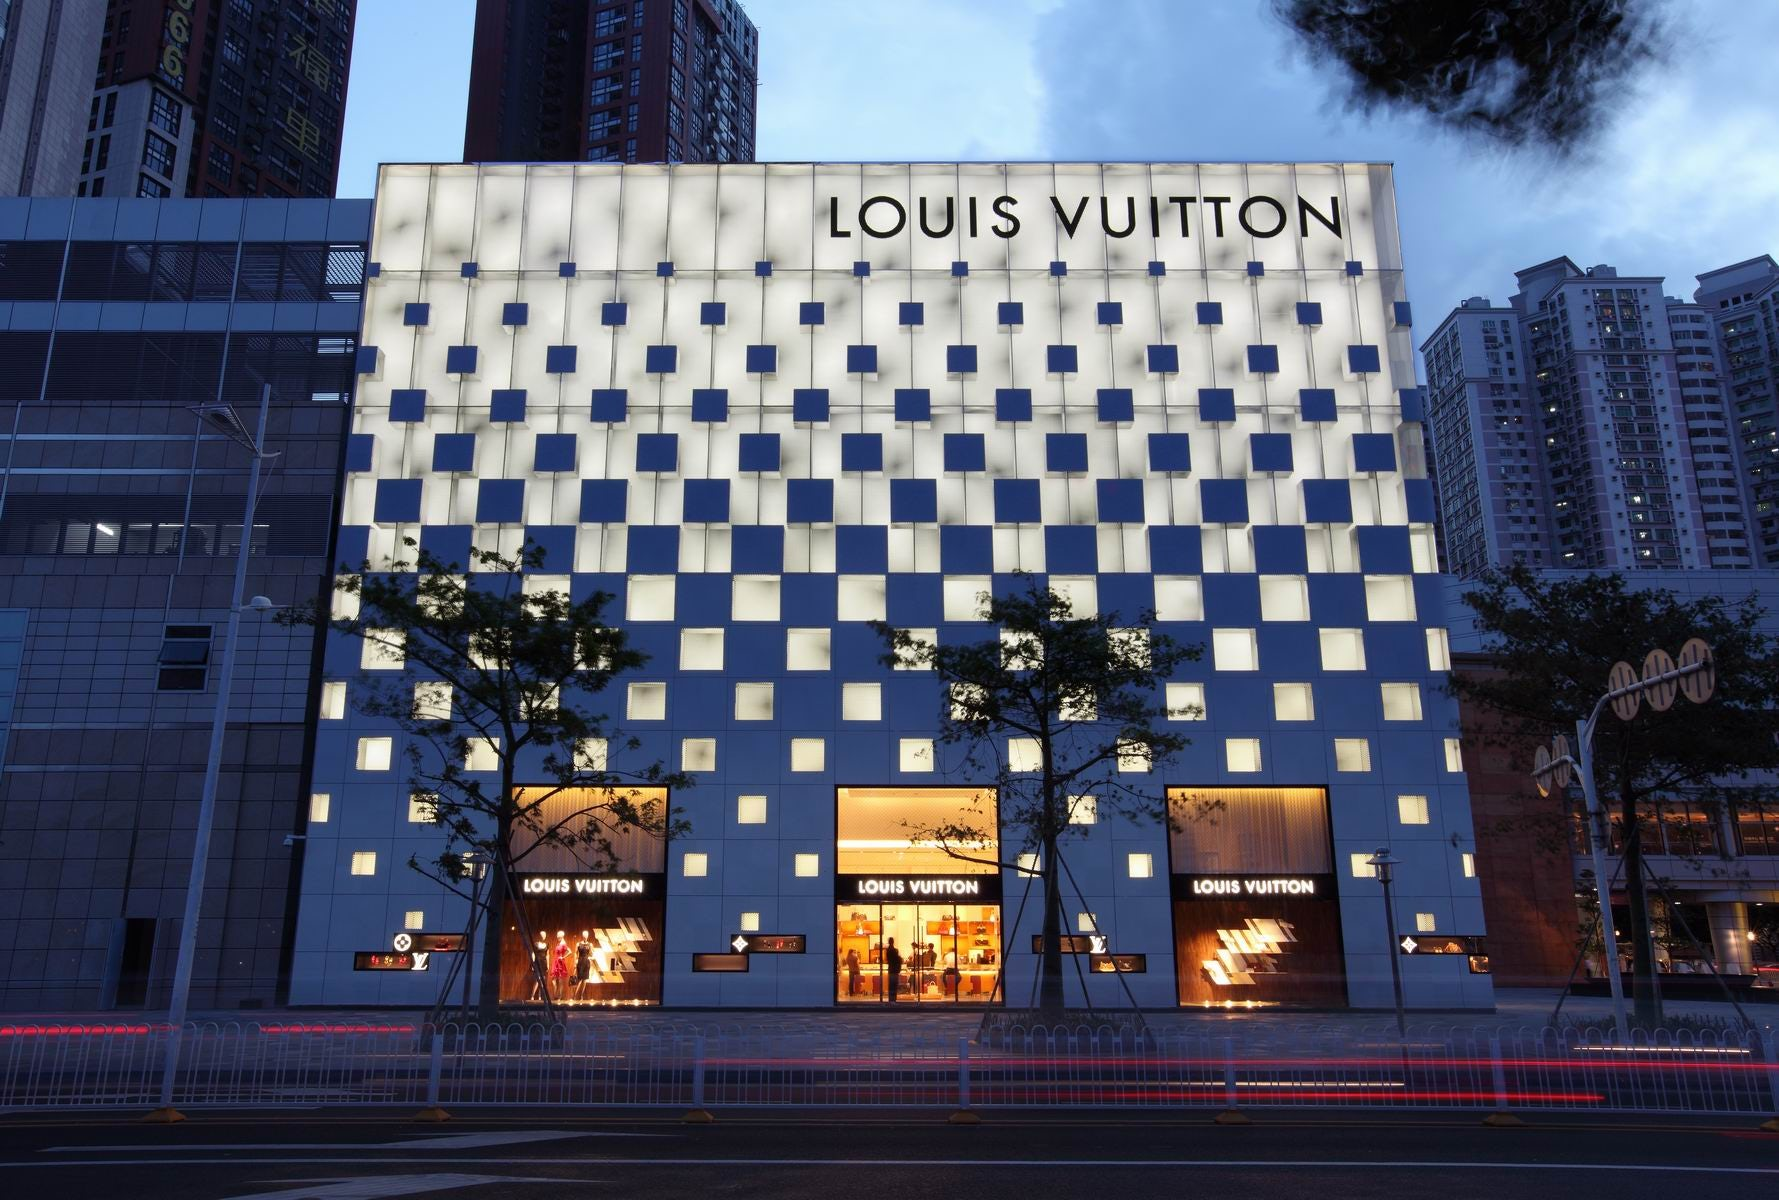 Louis Vuitton, Shenzhen, China | Source: Richards Basmajian